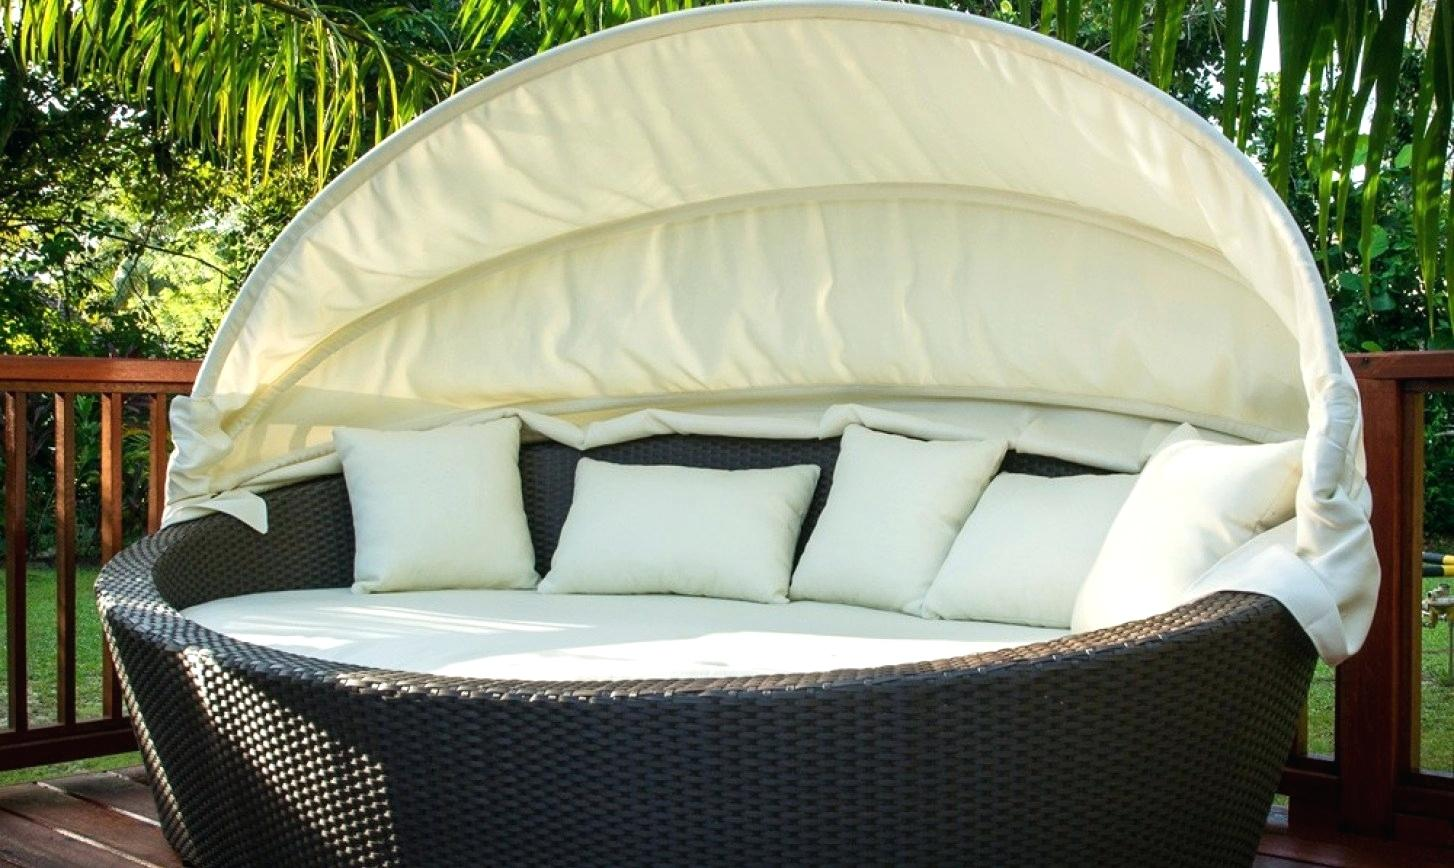 Outdoor Daybed Cushions | Cushions for Daybeds | Daybed Cushions